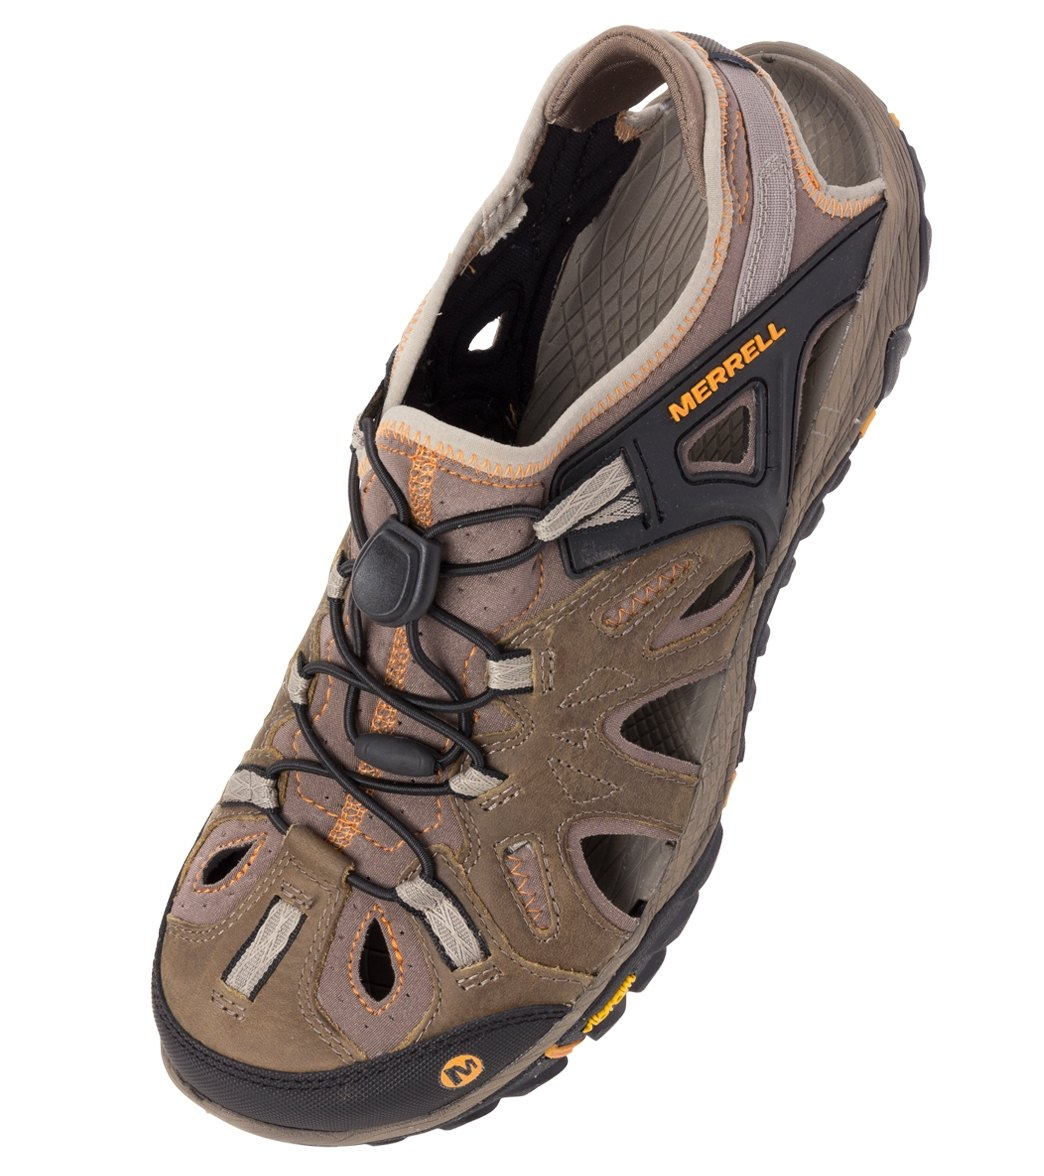 927ccf8a63d Merrell Men s All Out Blaze Sieve Water Shoes at SwimOutlet.com ...